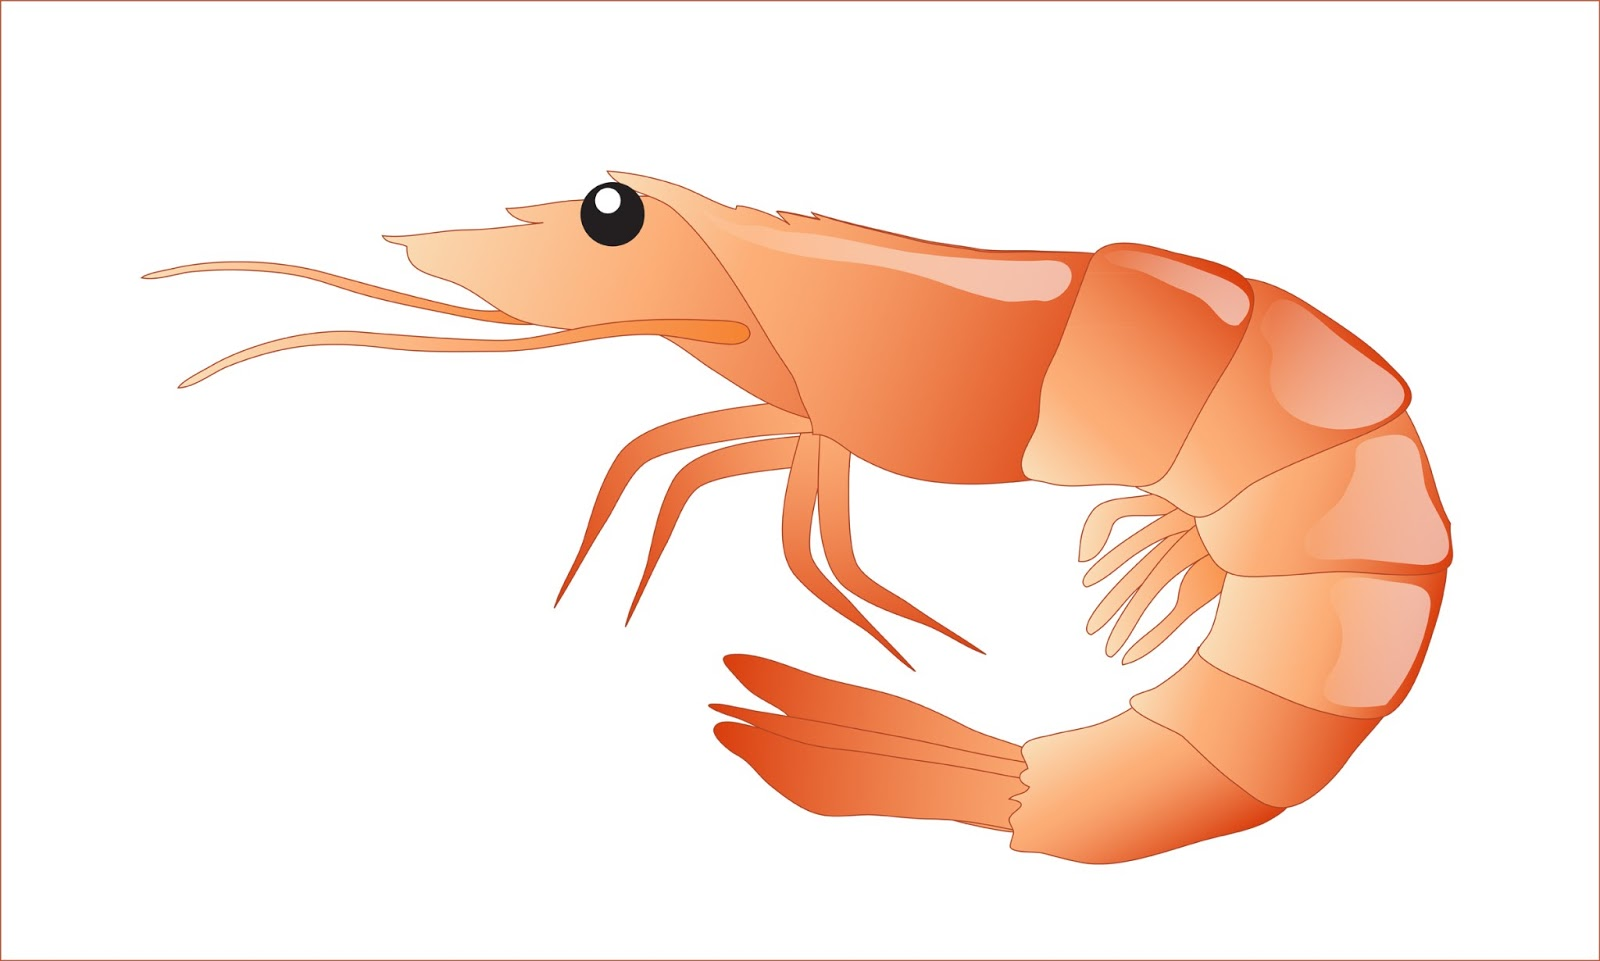 Free shrimp clipart 1 page of public dom-Free shrimp clipart 1 page of public domain clip art image-0